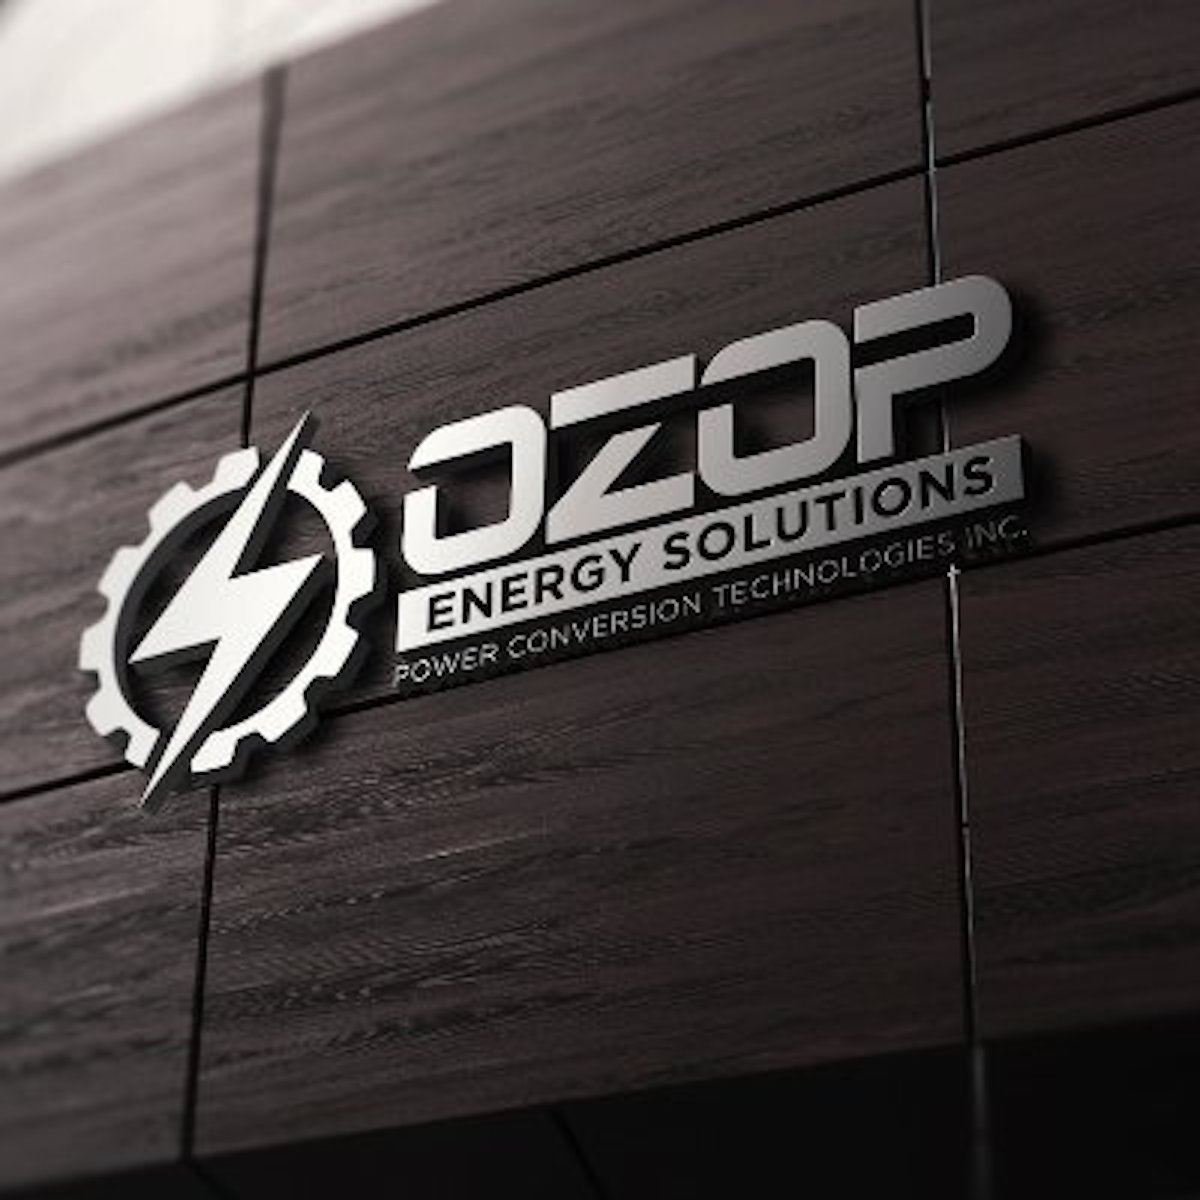 OZSC Stock Price Increases Over 25%: Why It Happened